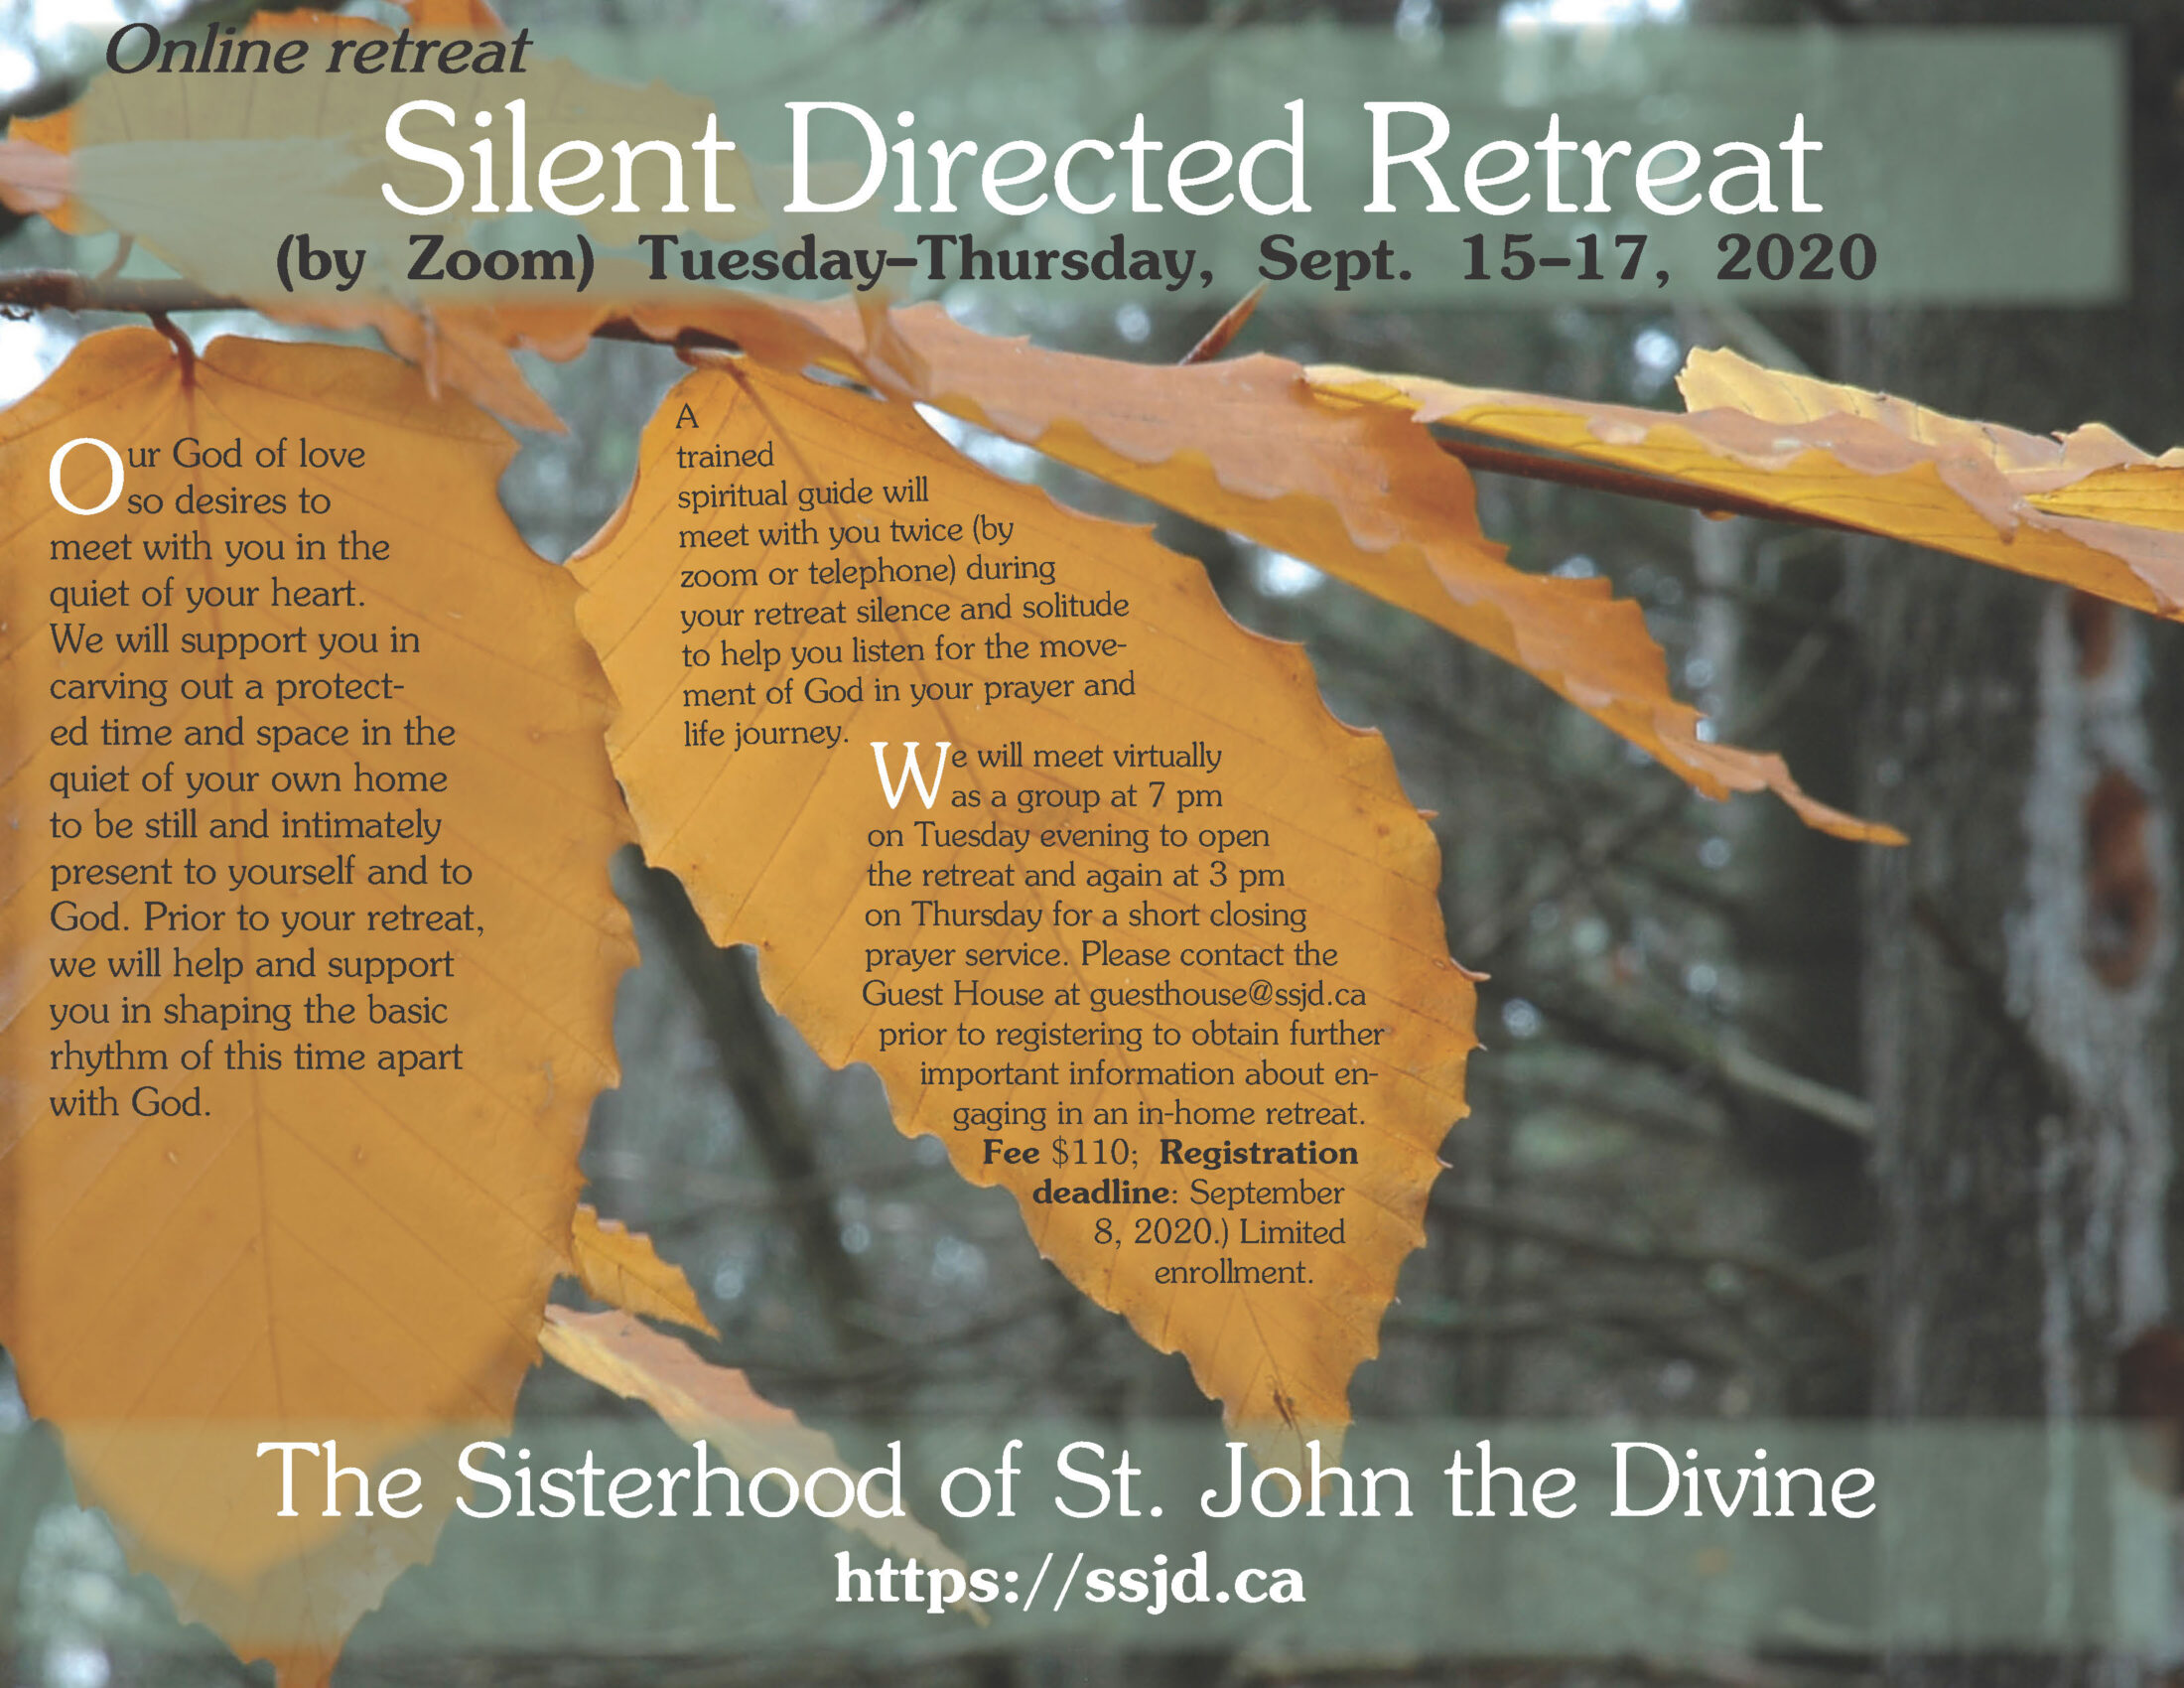 Silent Directed Retreat